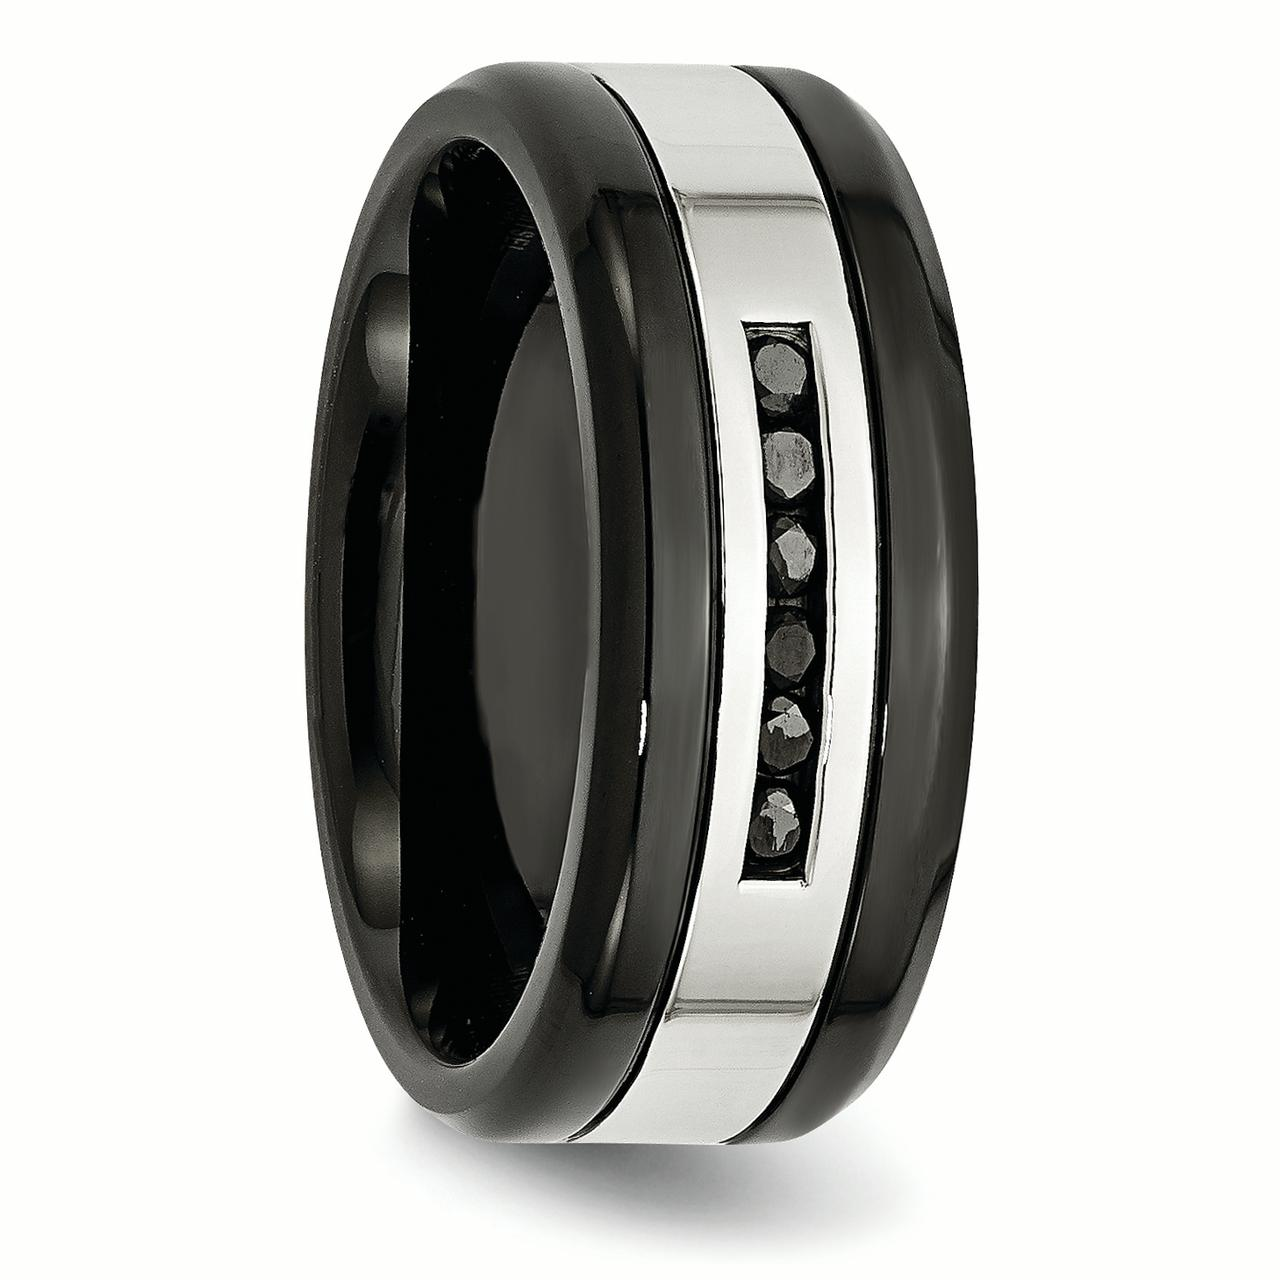 Stainless Steel Black Plated/ Diamonds 9mm Wedding Ring Band Size 12.00 Man Fancy Fashion Jewelry Gift For Dad Mens For Him - image 3 de 7